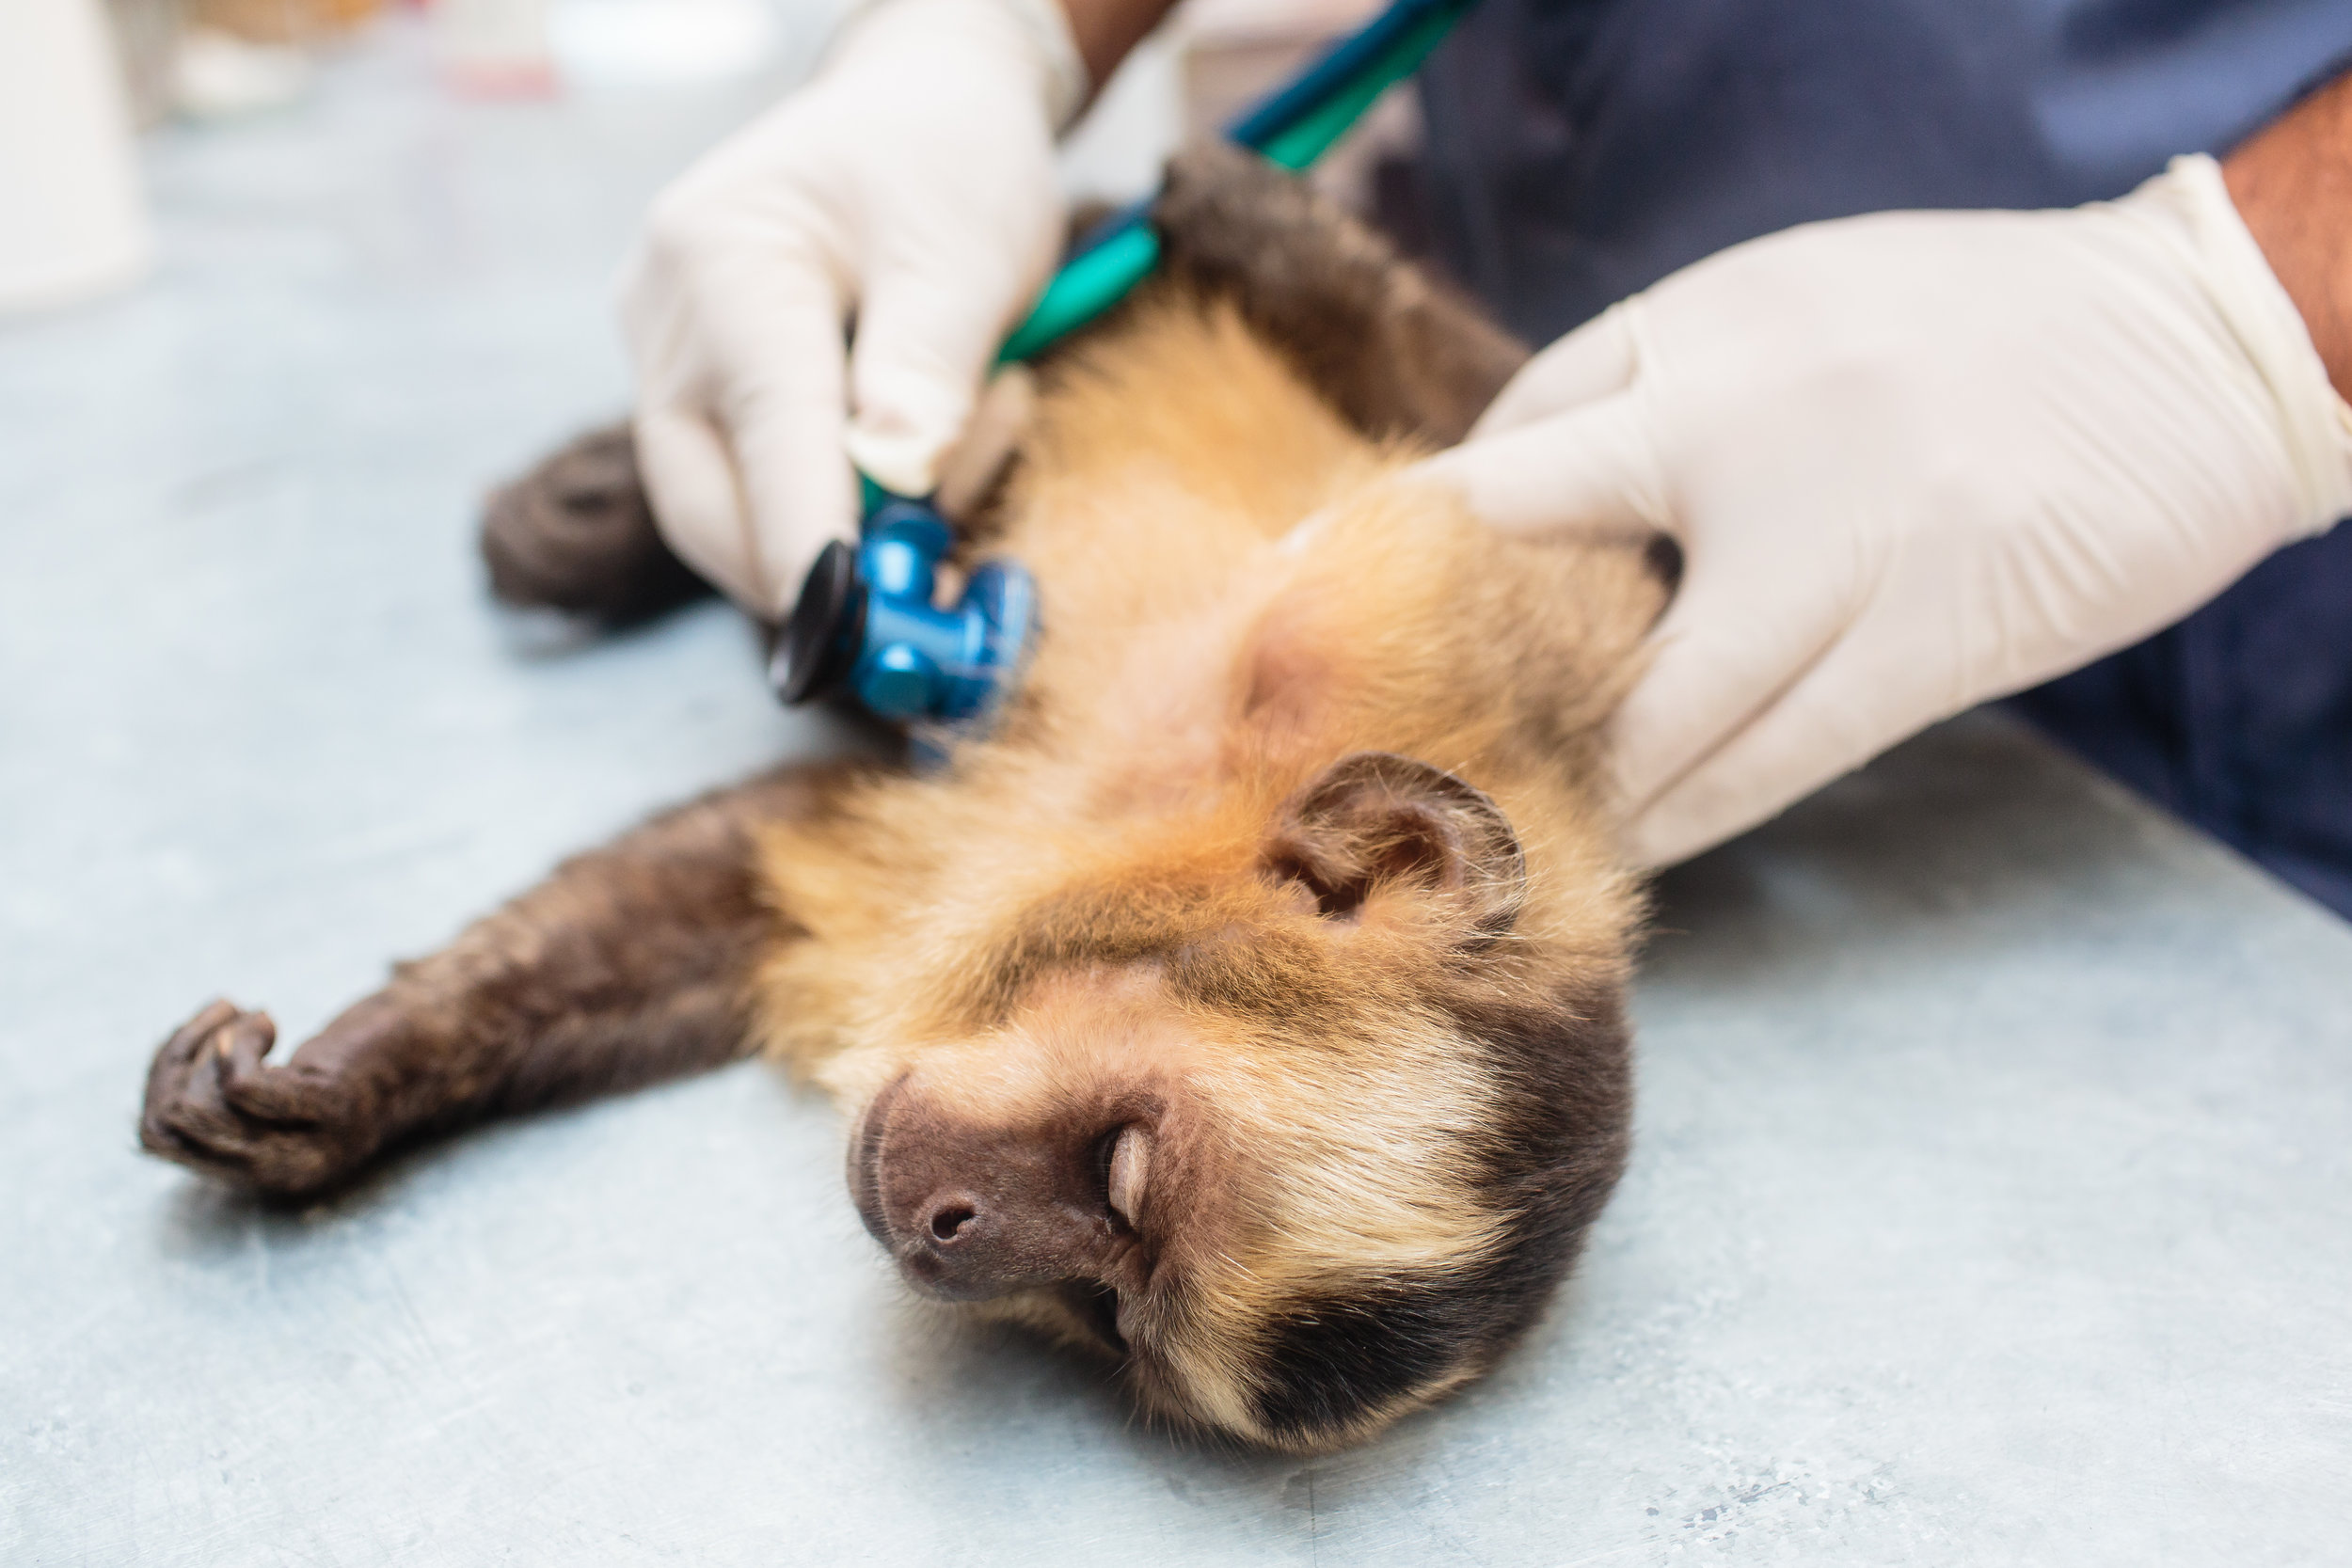 PHOTO: TRACEY BUYCE  A capuchin monkey undergoing a procedure.